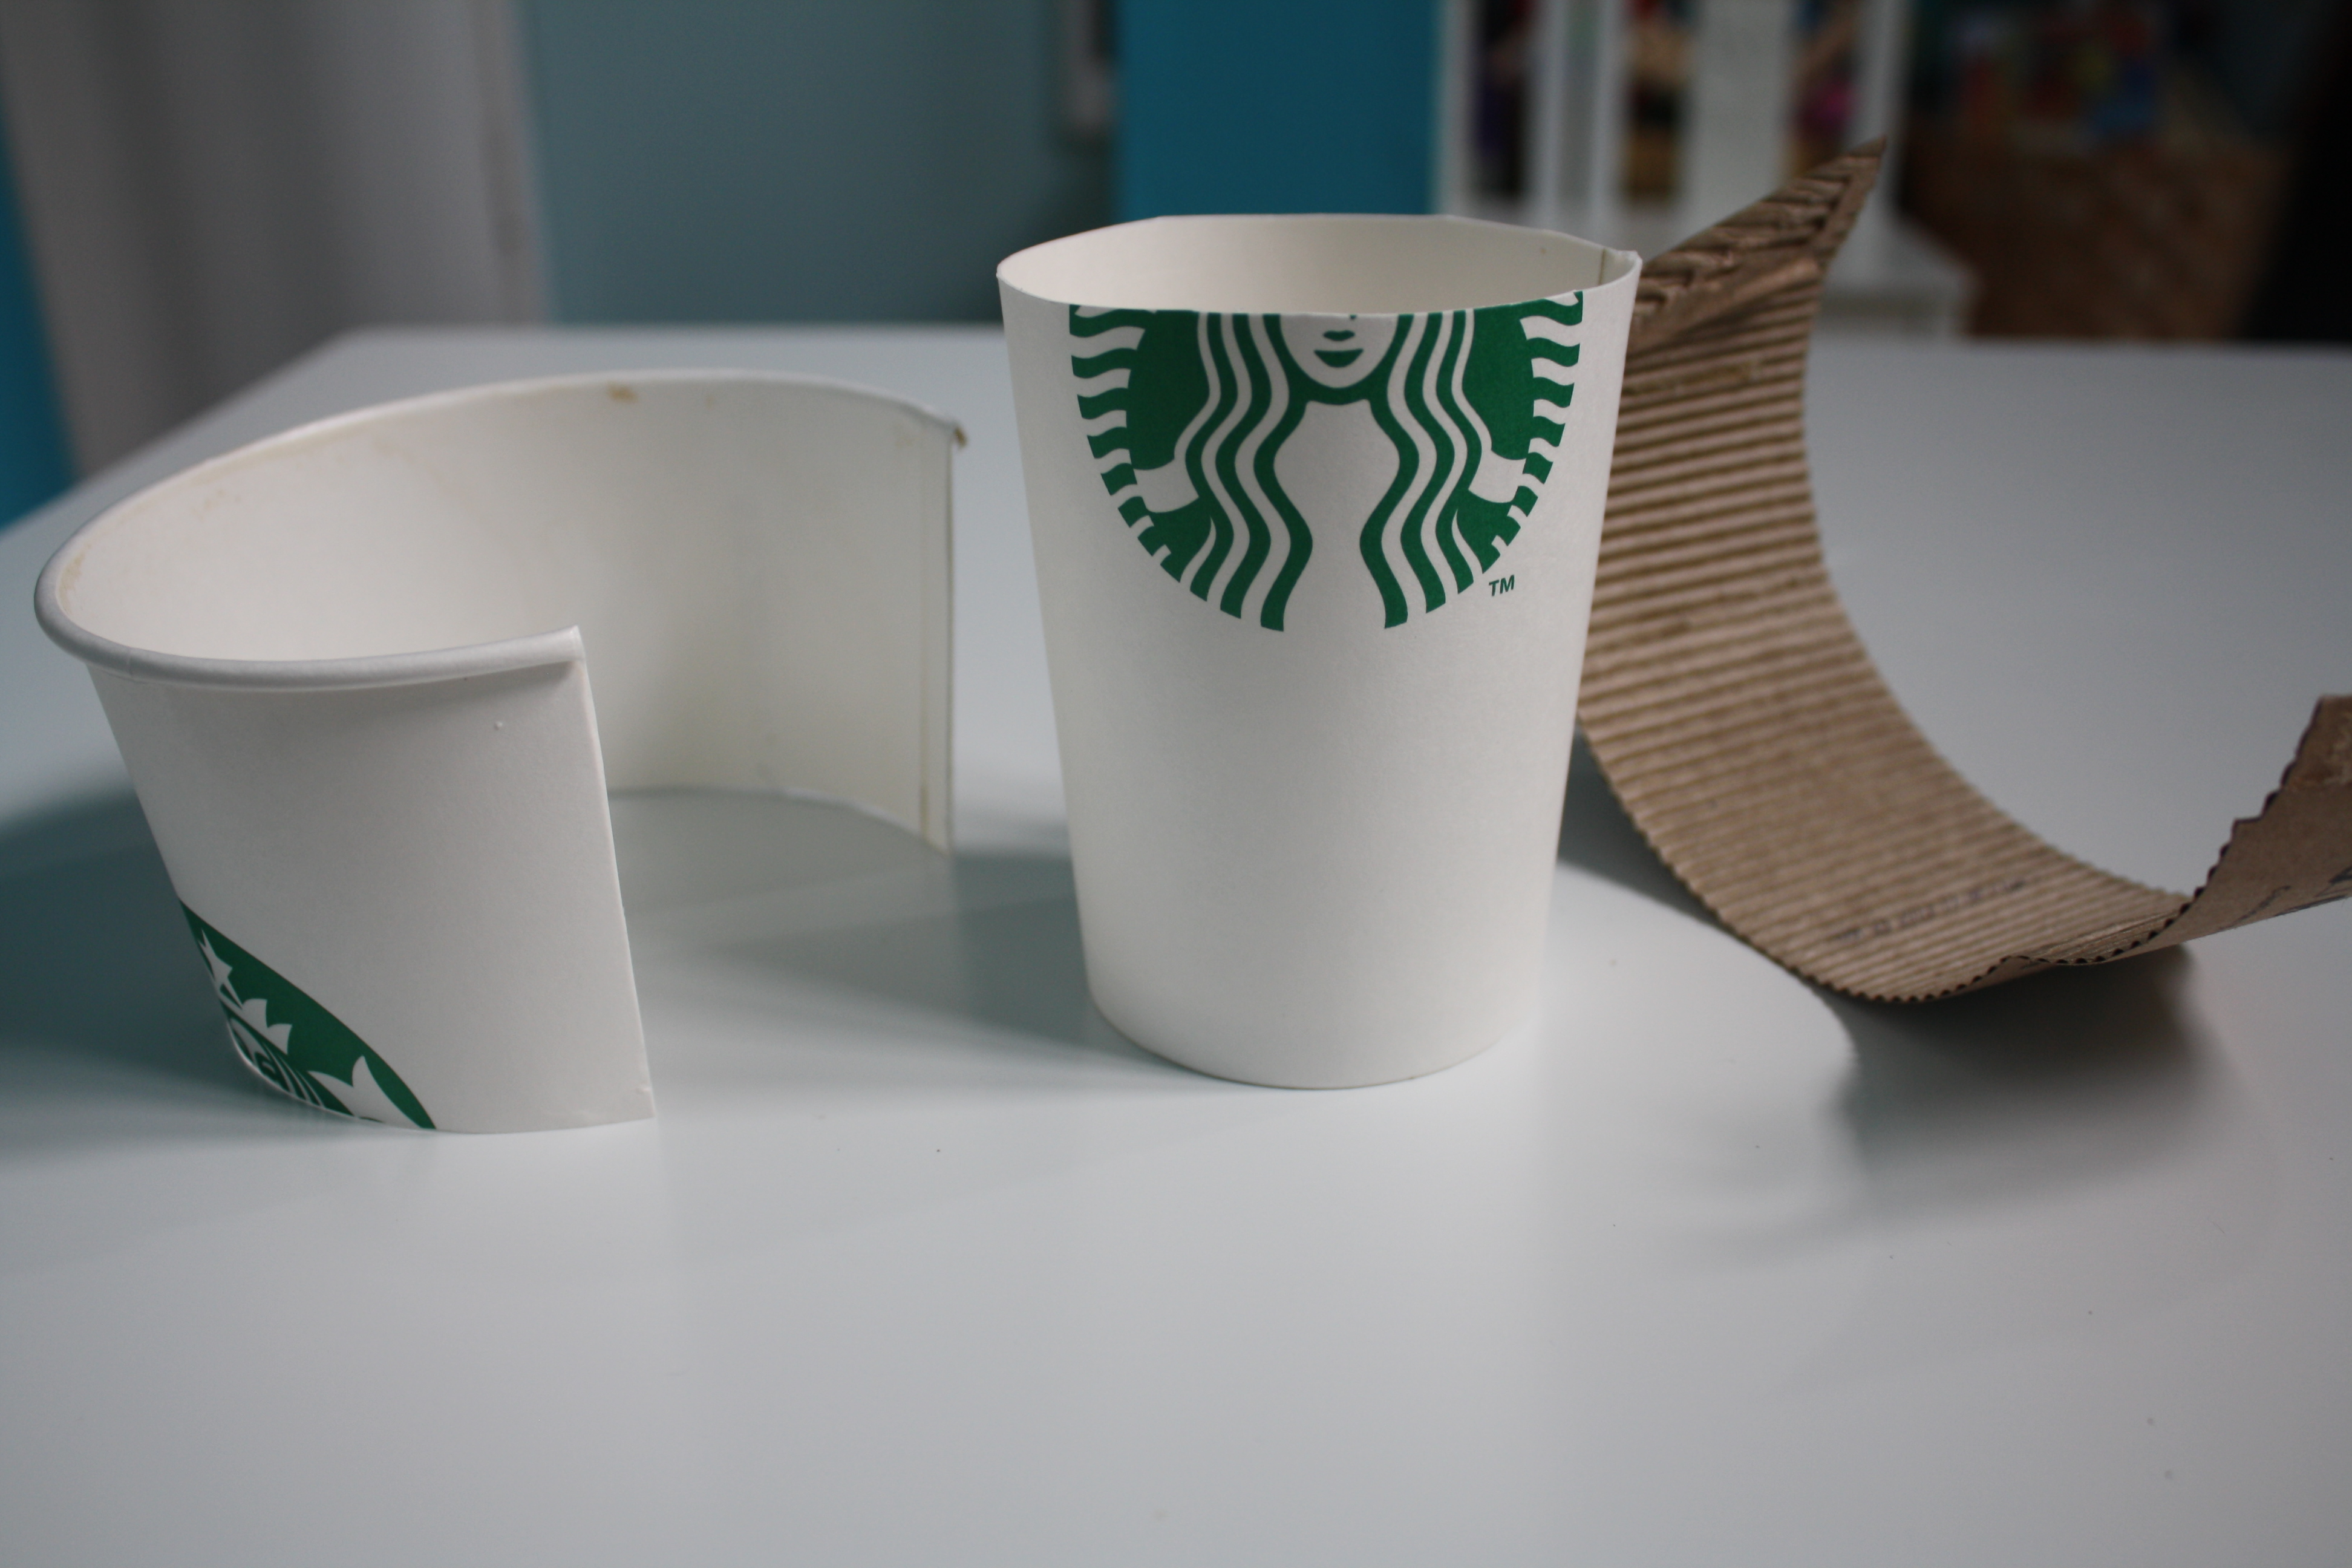 starbucks paper Good news: starbucks via is no longer the pinnacle of the instant coffee market  coffee's third-wave innovators (think hipster baristas who.